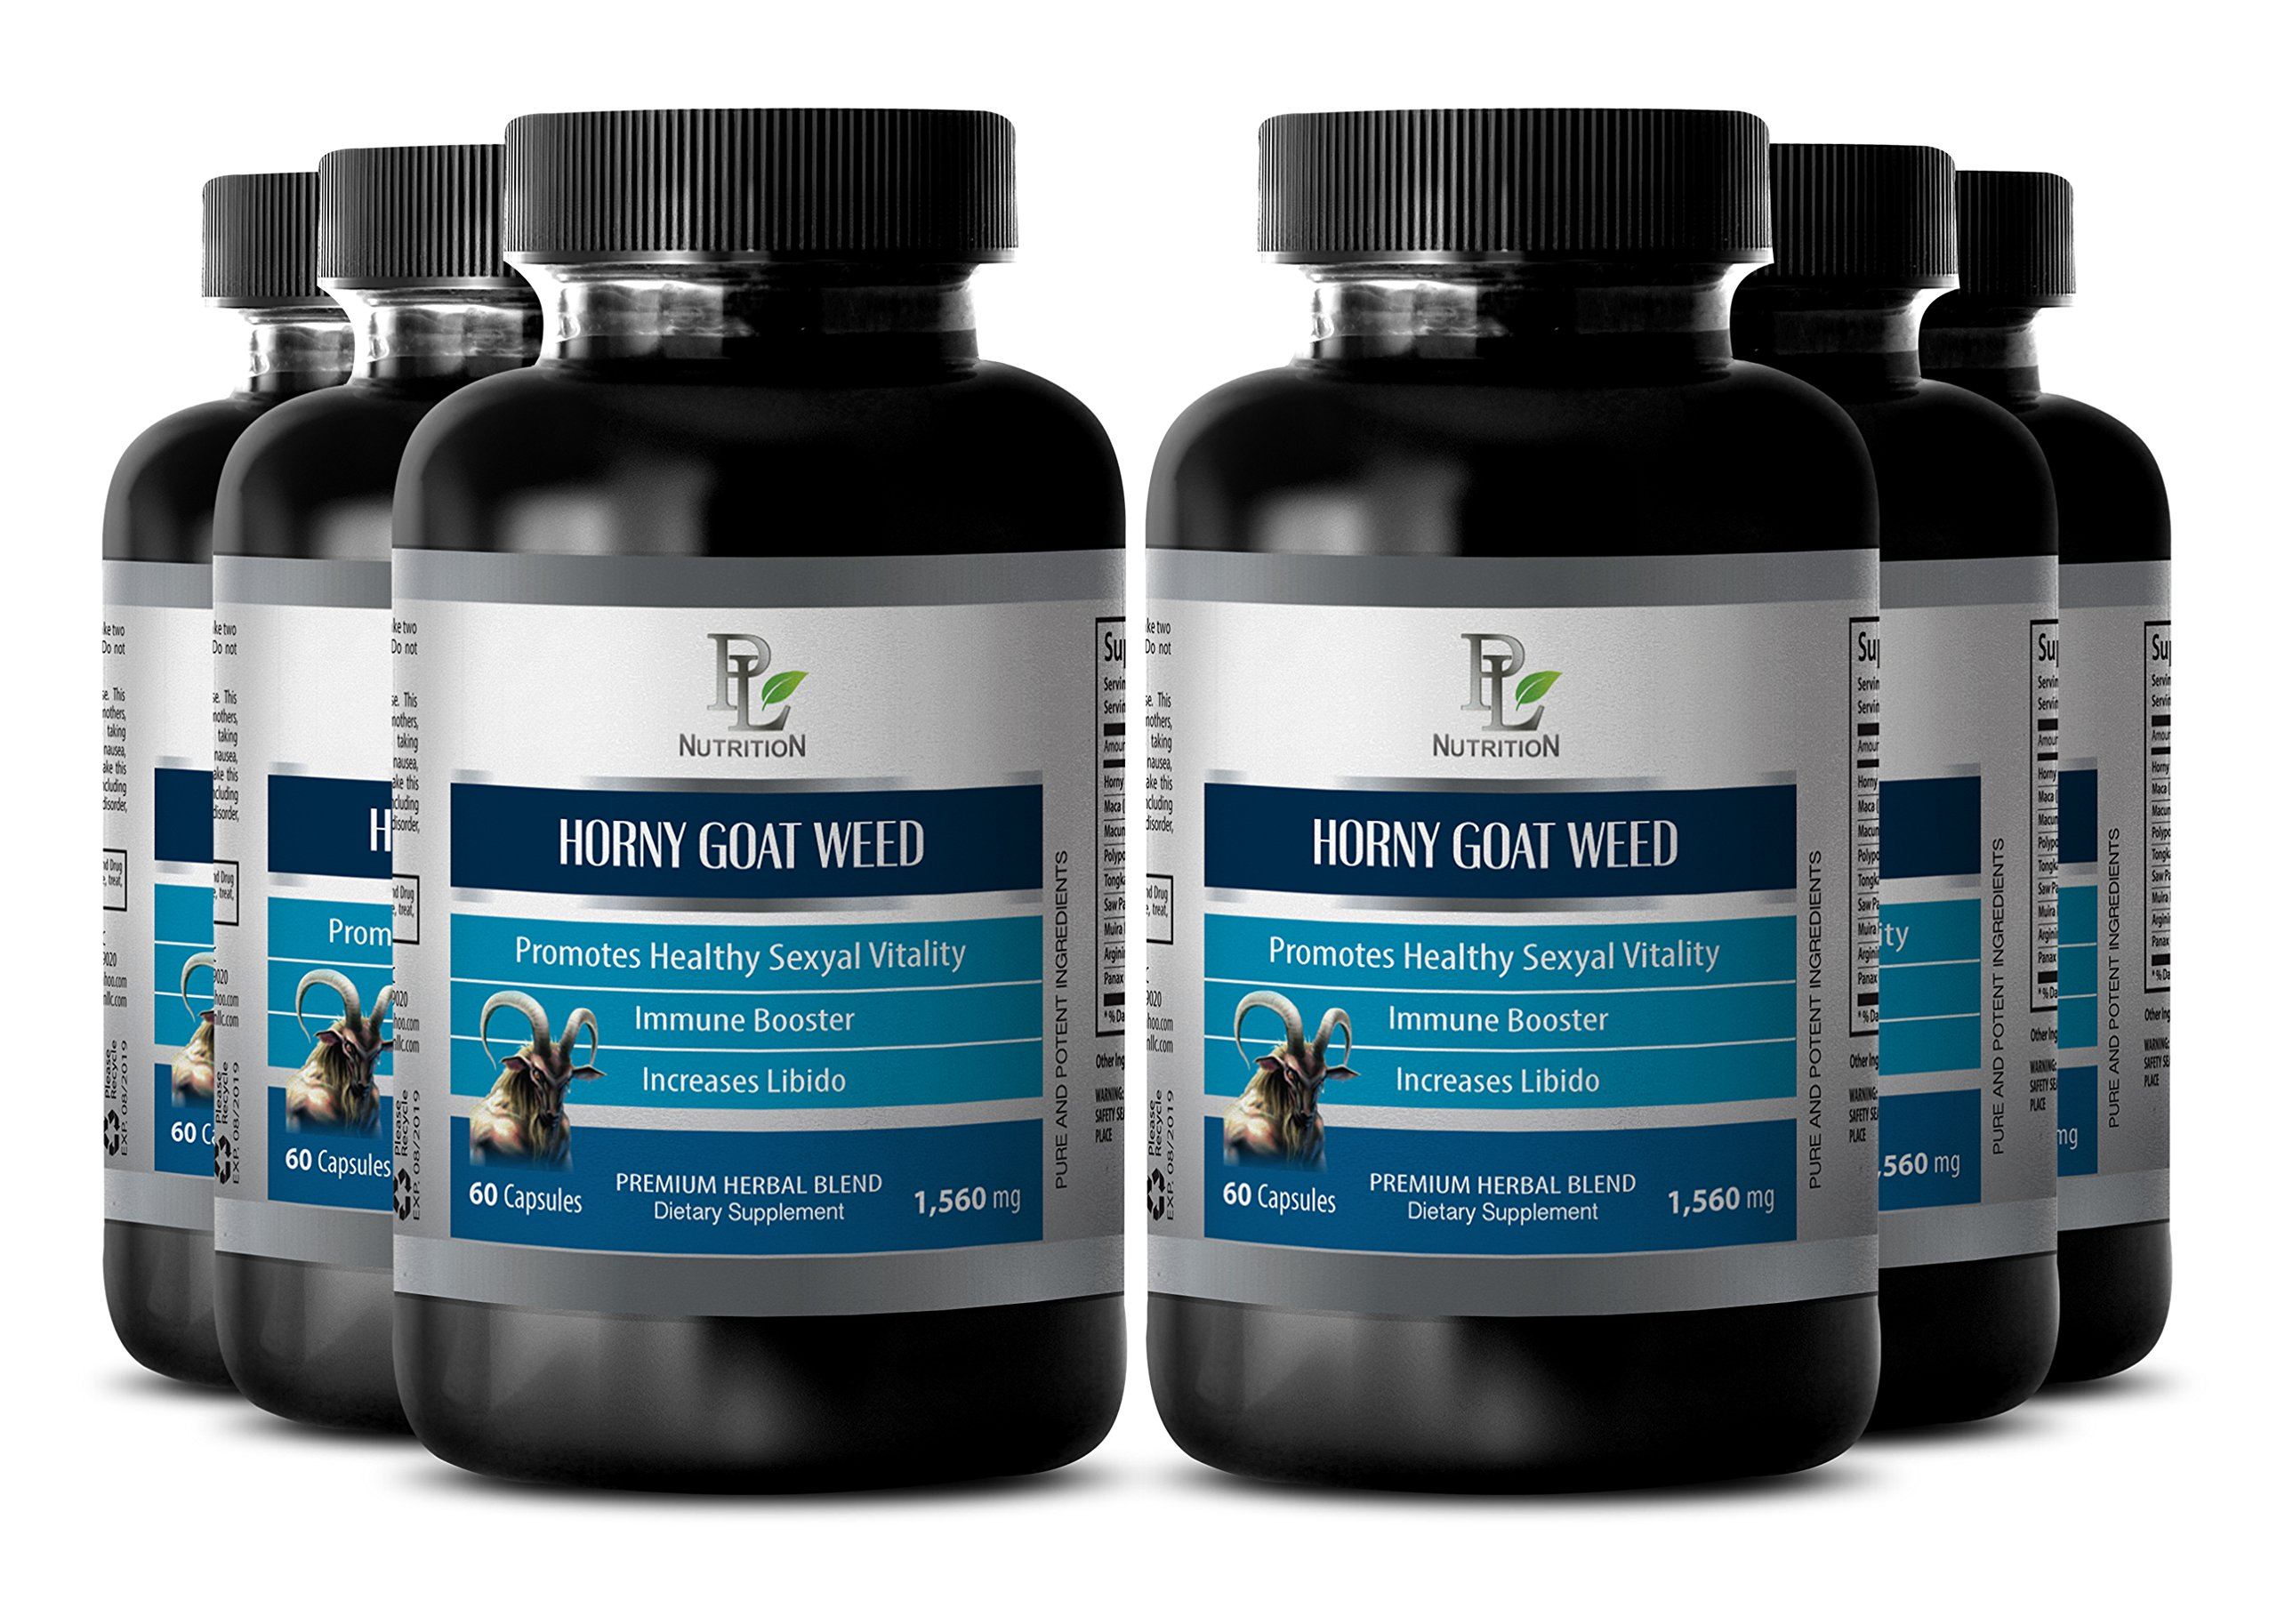 Women libido enhancements - HORNY GOAT WEED EXTRACT - Goat weed for women - 6 Bottle 360 Capsules